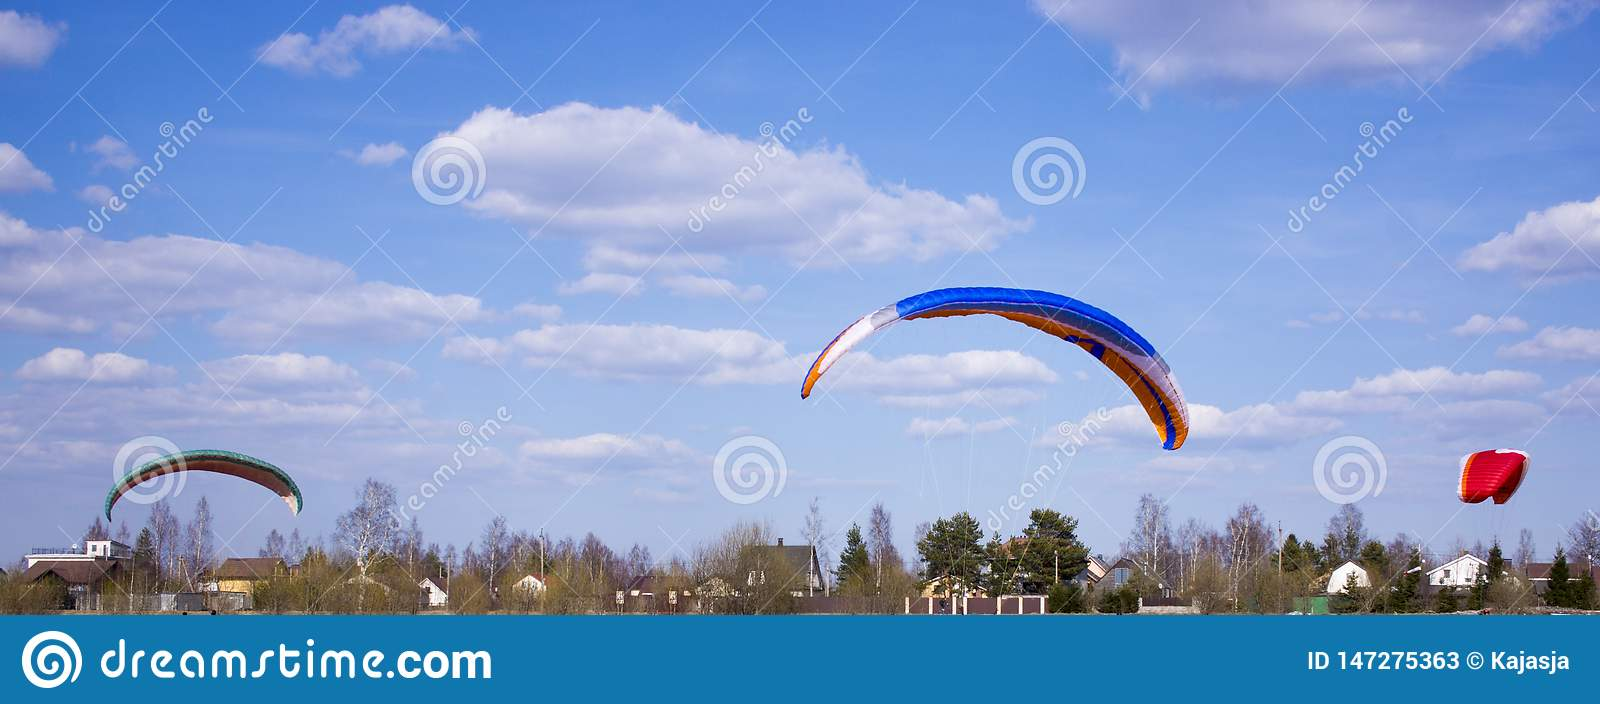 Paraglider flies against the backdrop of fields, land. View from above. Paragliding